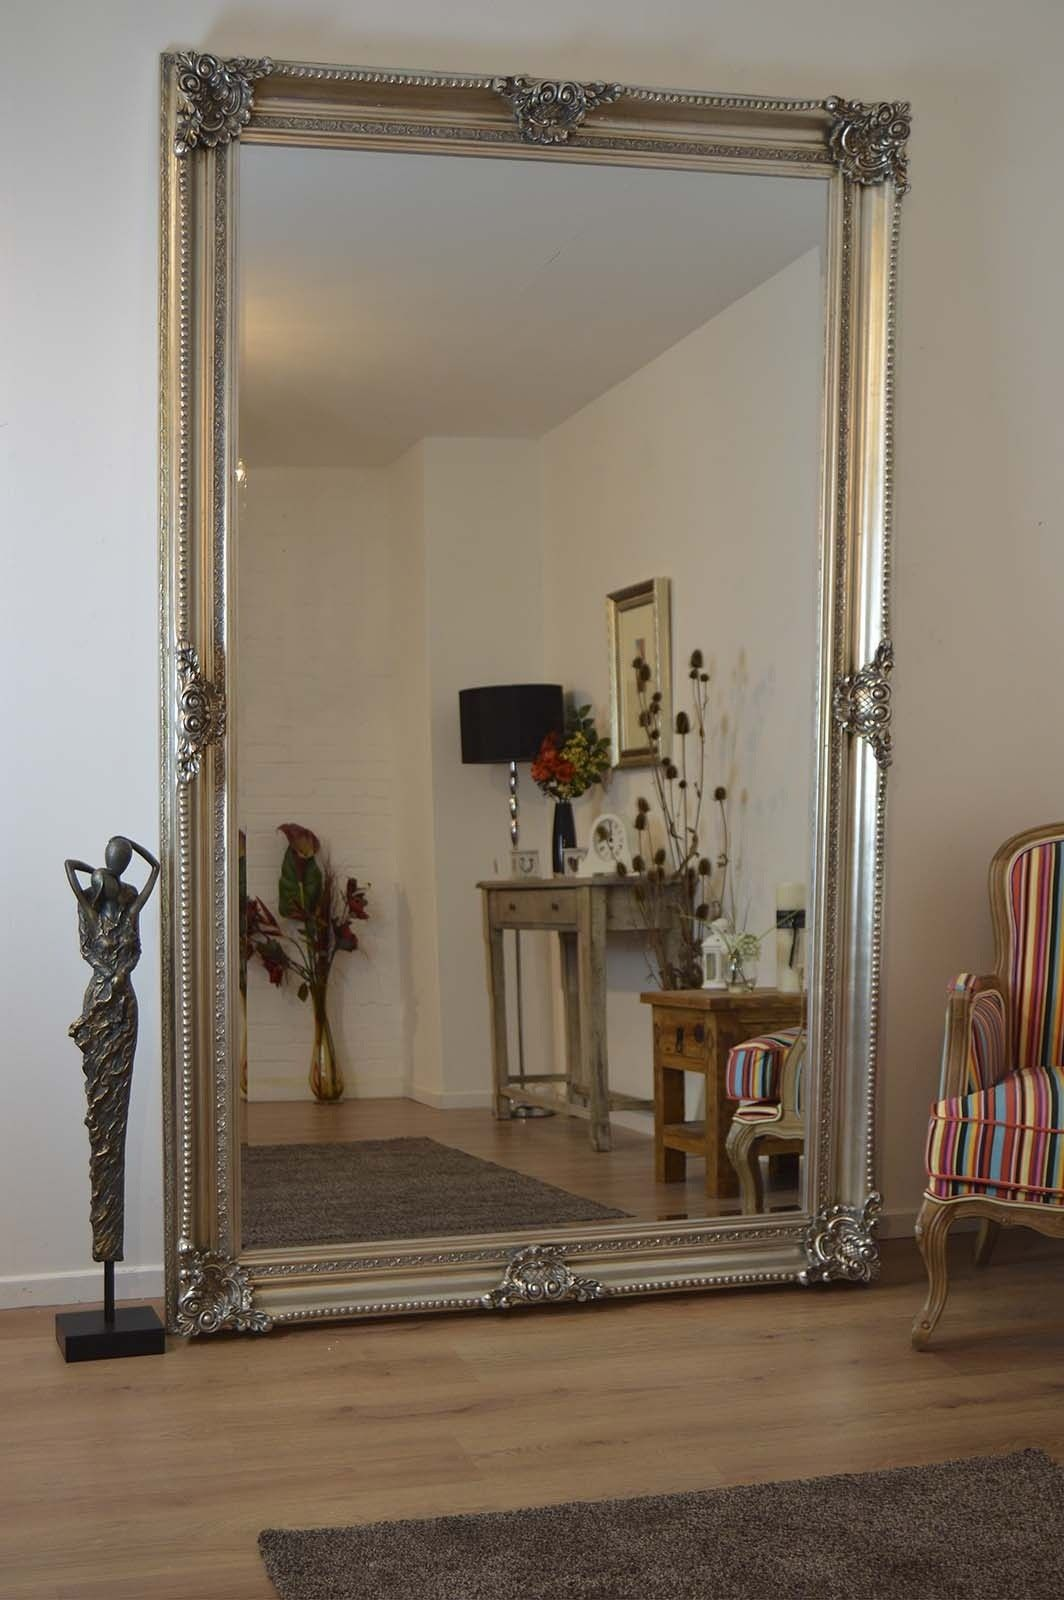 8ft x 5ft v large antique style silver rectangle wood wall mirror mirror outlet has the largest range of antique design mirrors including v large antique style silver rectangle wood wall mirror leaner x amipublicfo Images